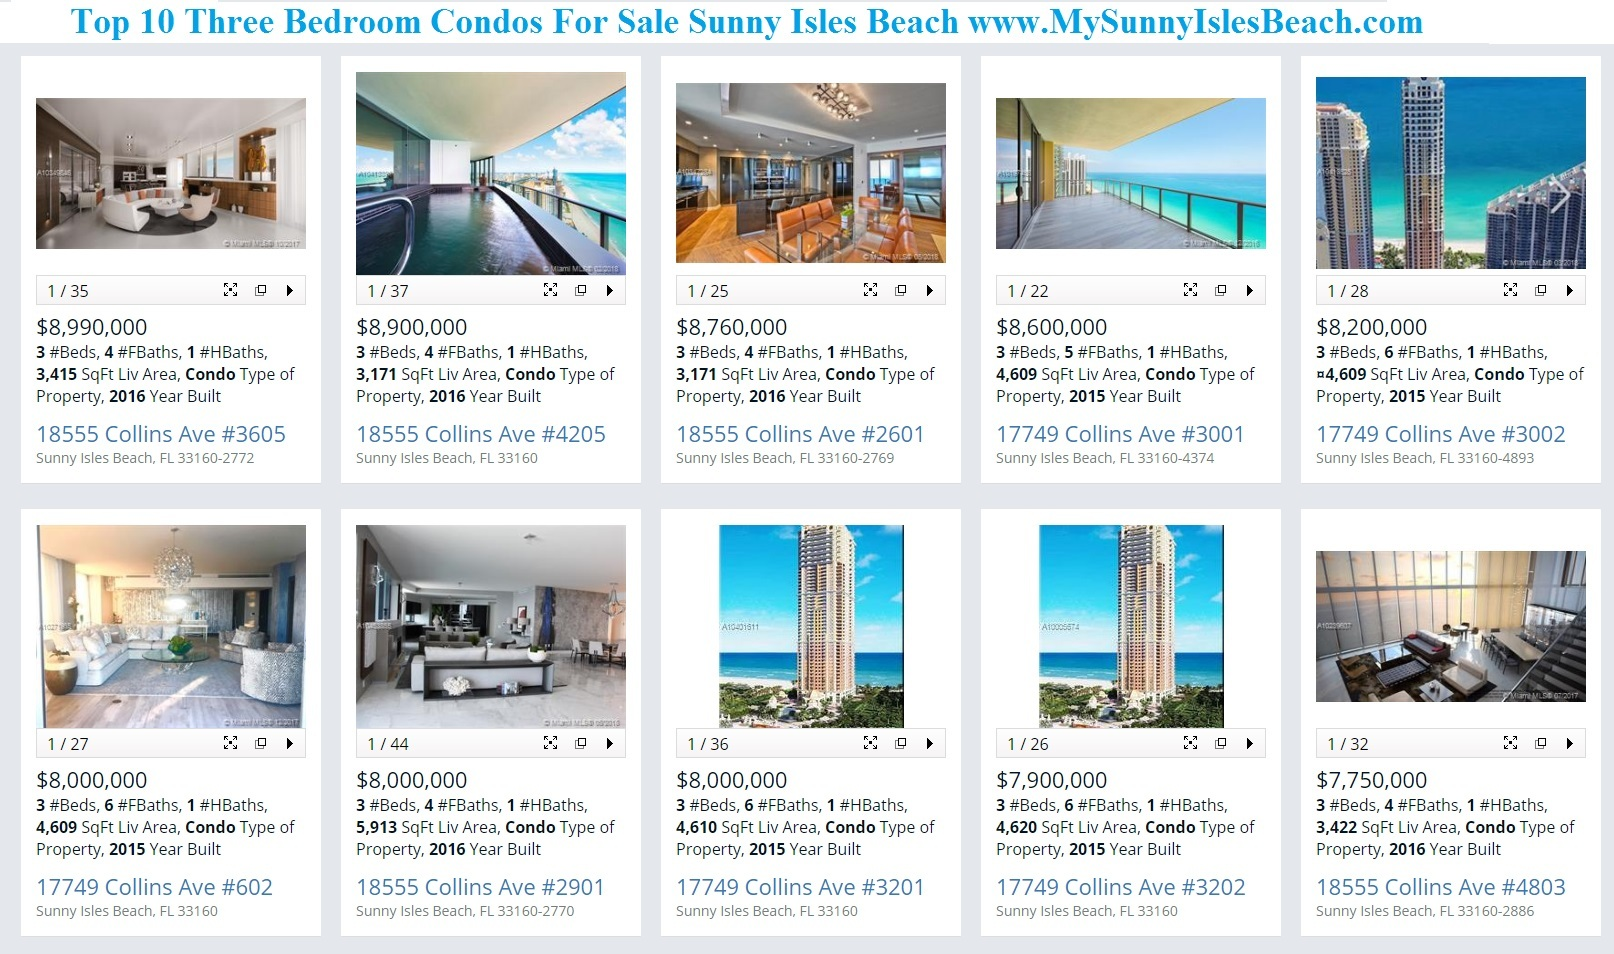 Top 10 priced Three Bedroom Condos For Sale Sunny Isles Beach June 23